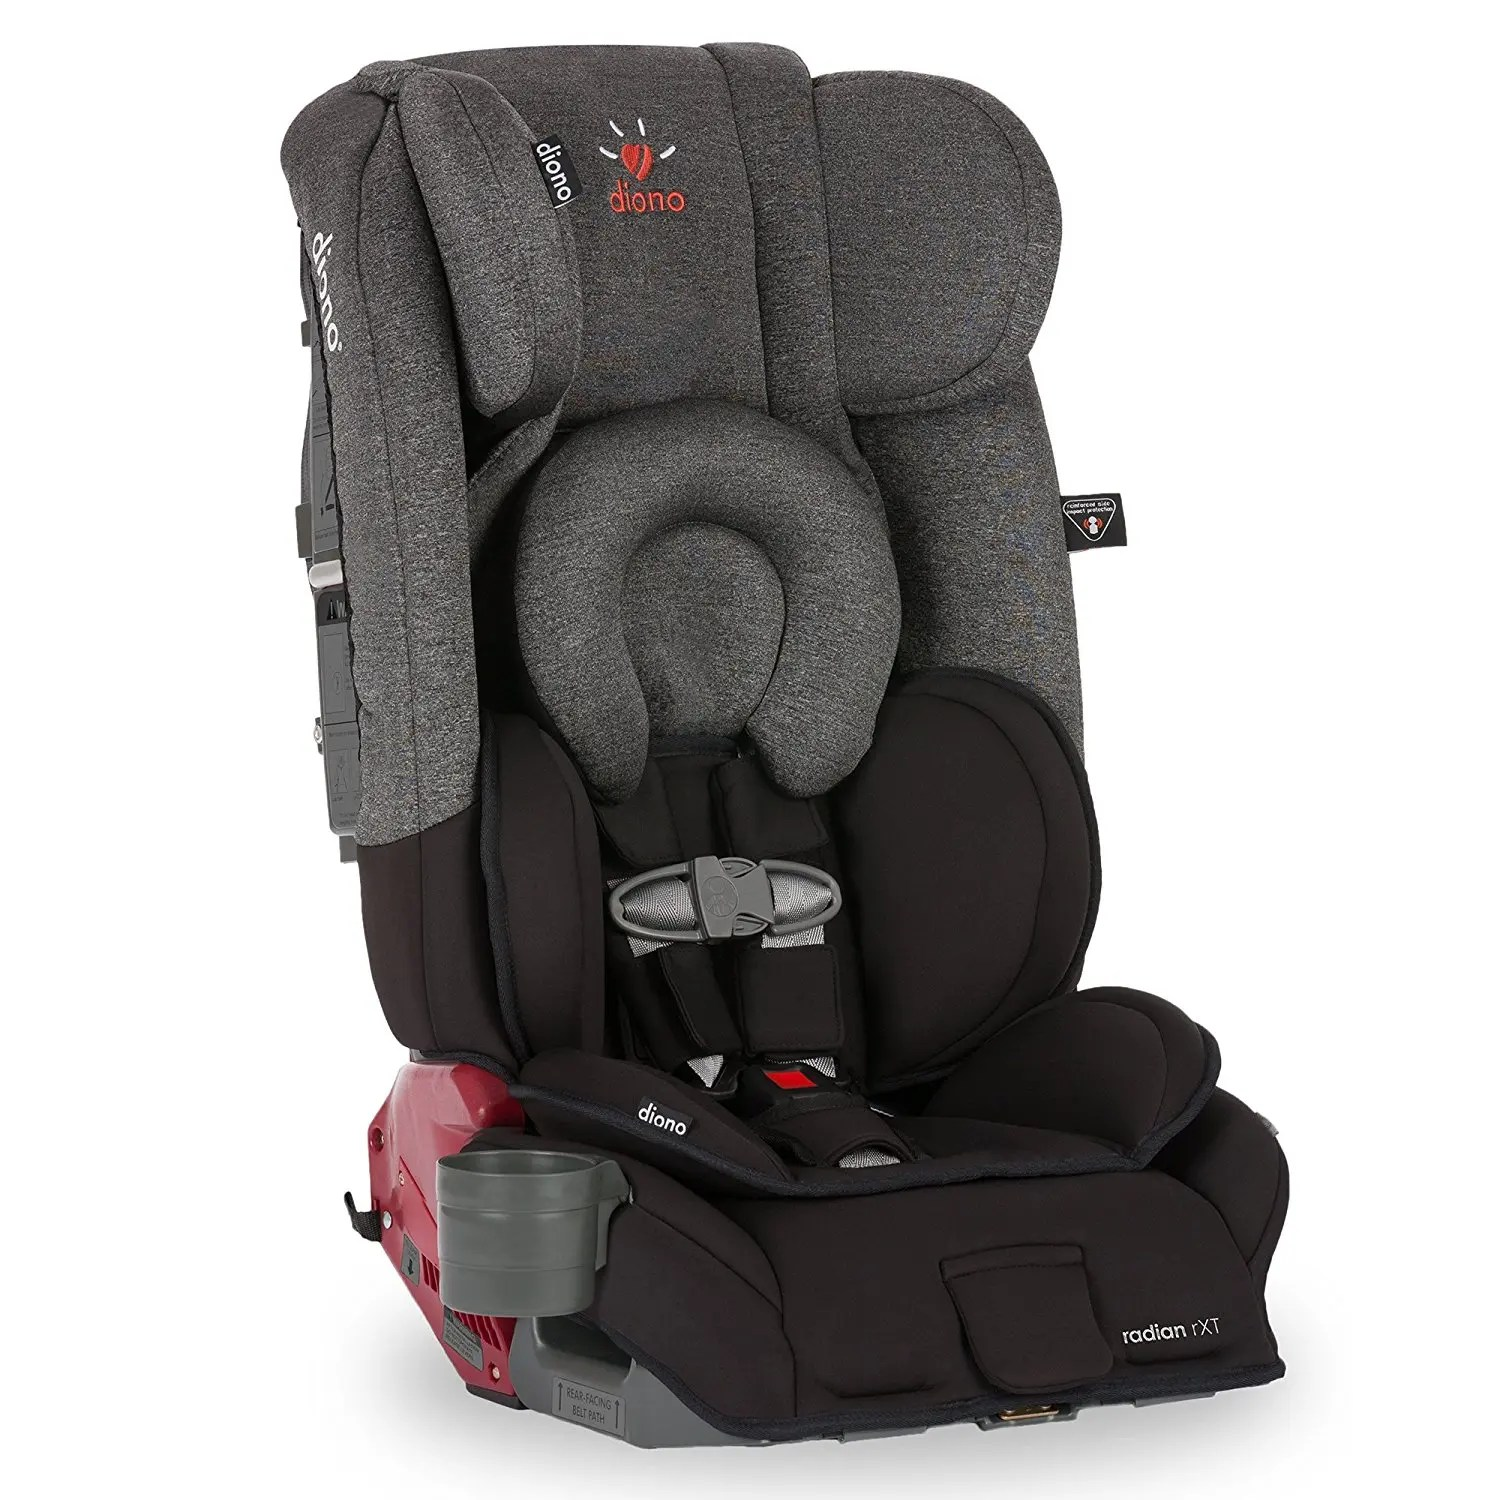 The Top 10 Best Travel Car Seats For Babies Who Pack Light ...